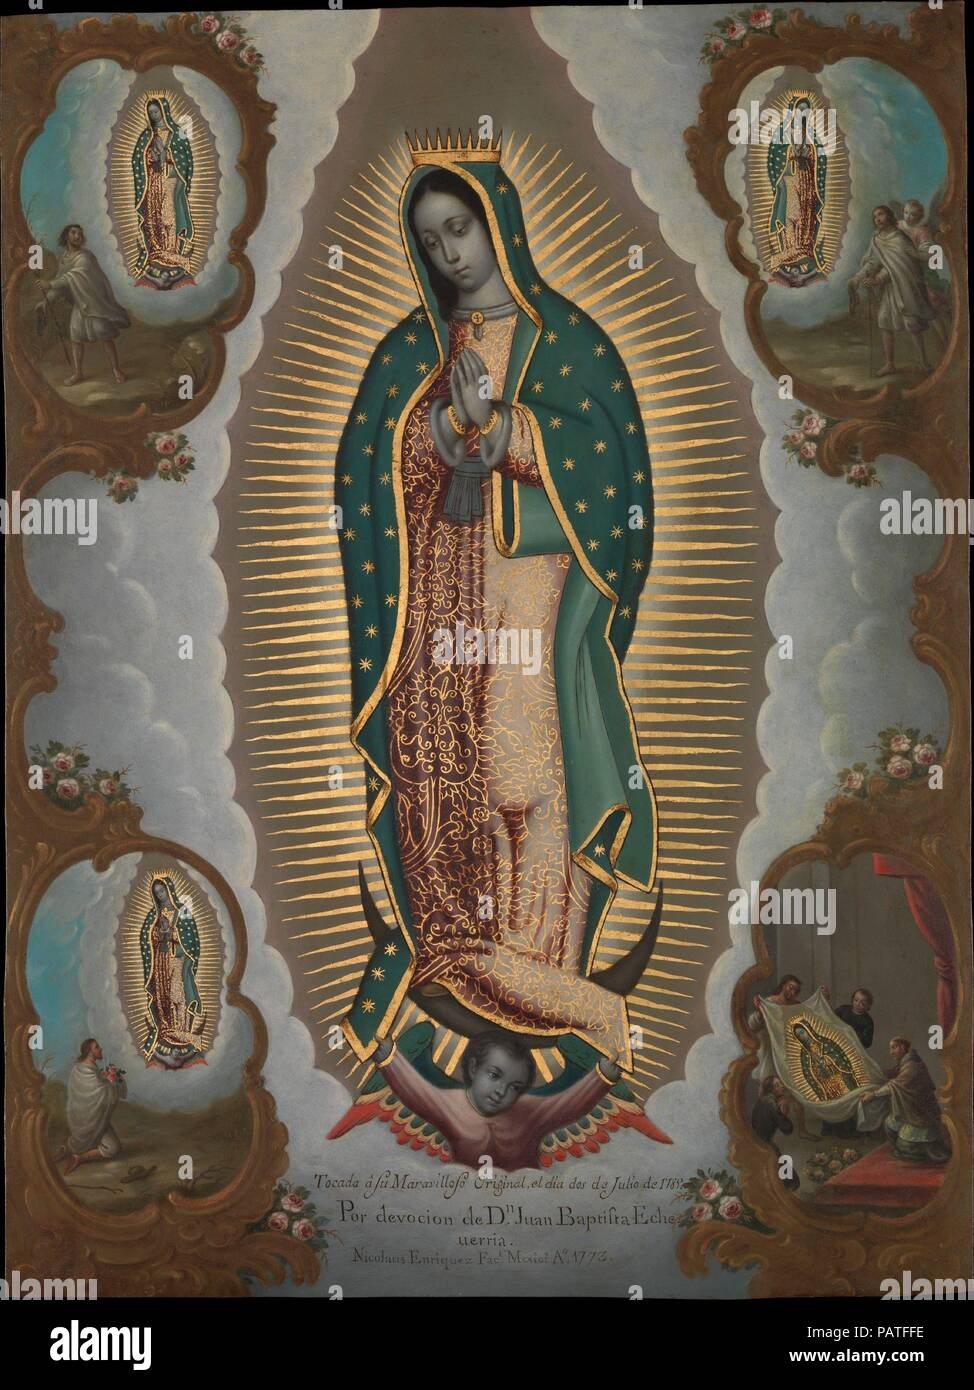 The Virgin of Guadalupe with the Four Apparitions. Artist: Nicolás Enríquez (Mexican, 1704-1790). Dimensions: 22 1/4 × 16 1/2 in. (56.5 × 41.9 cm)  Framed: 25 1/4 × 19 7/8 × 1 3/8 in. (64.1 × 50.5 × 3.5 cm). Date: 1773.  In 1773, when Nicolás Enríquez painted this copy of the Virgin of Guadalupe, it was the most widely venerated sacred image in New Spain. In this painting the miraculous image is encircled by four scenes that attest to its divine origin. They record the Virgin's three appearances to the Indian Juan Diego at Tepeyac, near Mexico City, and culminate in the revelation of her image Stock Photo